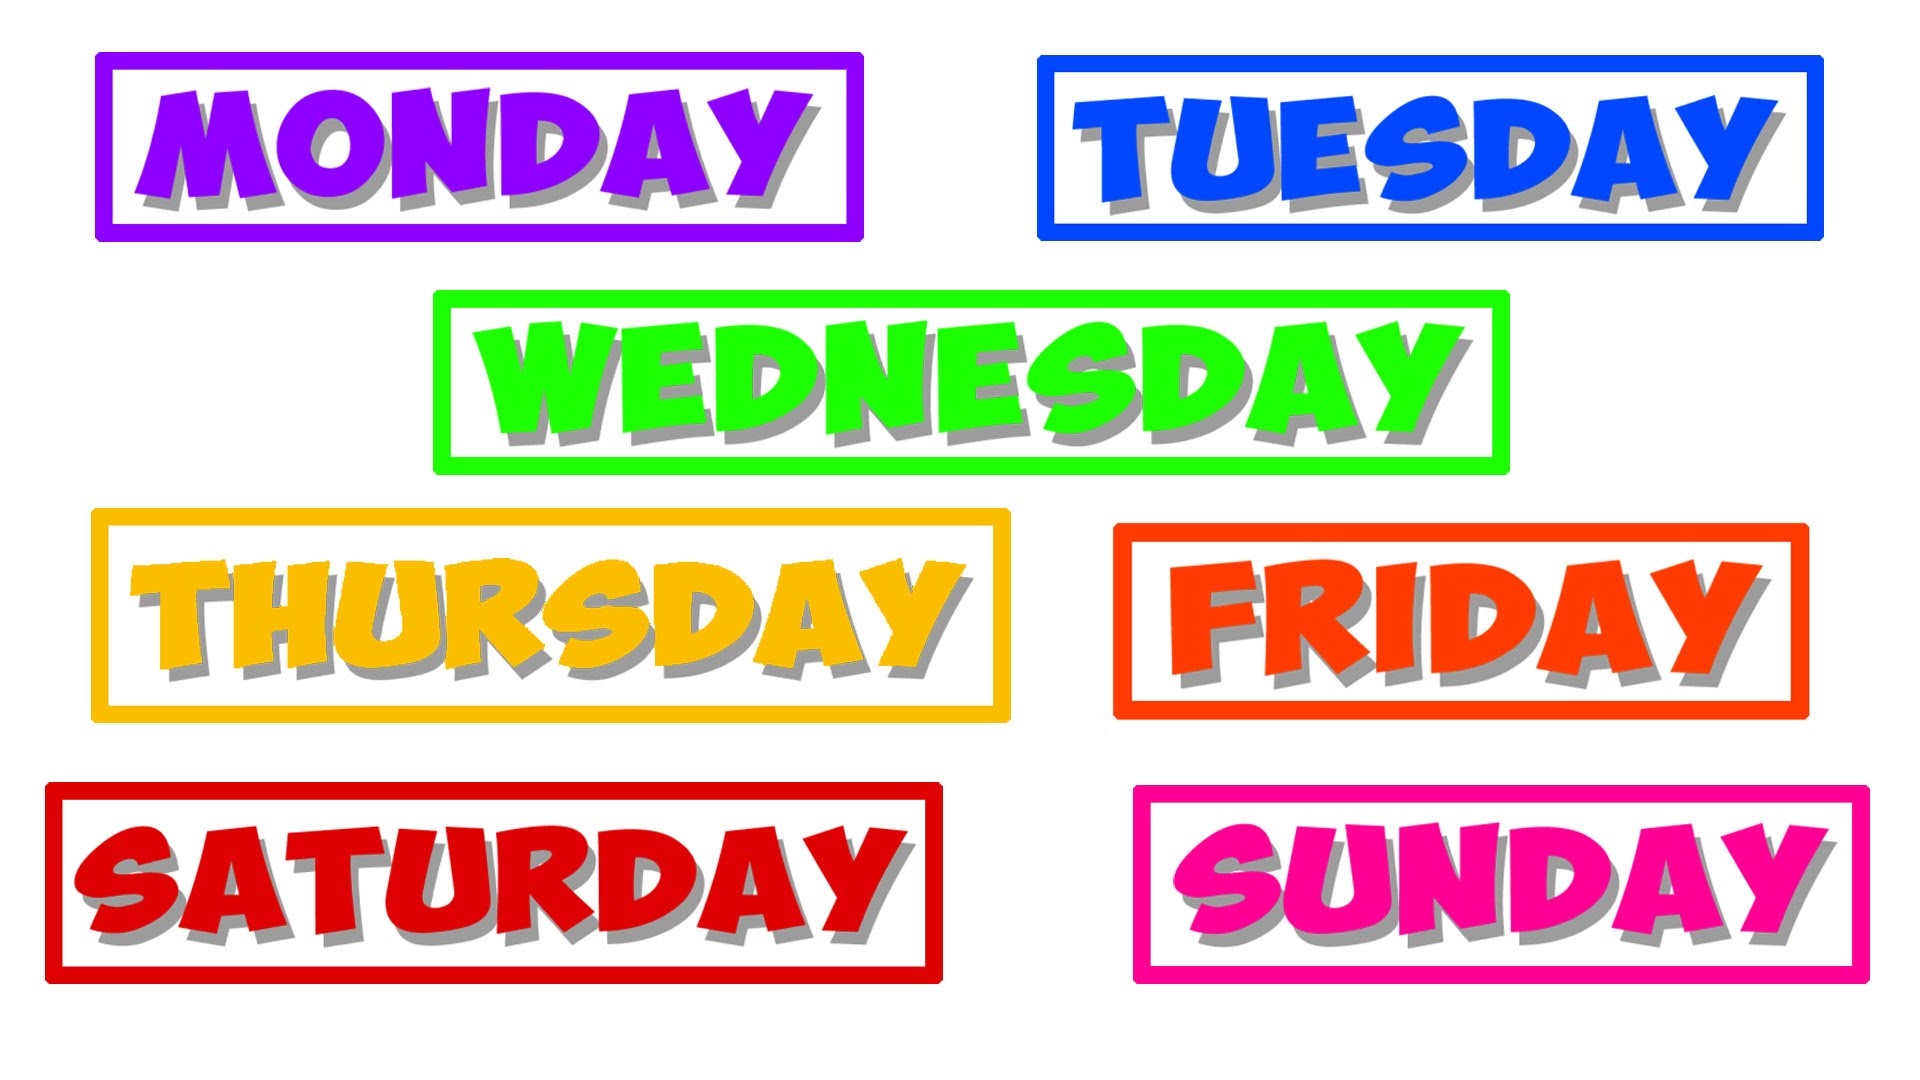 A Little Cooler And Does The Day Of The Week Influence The